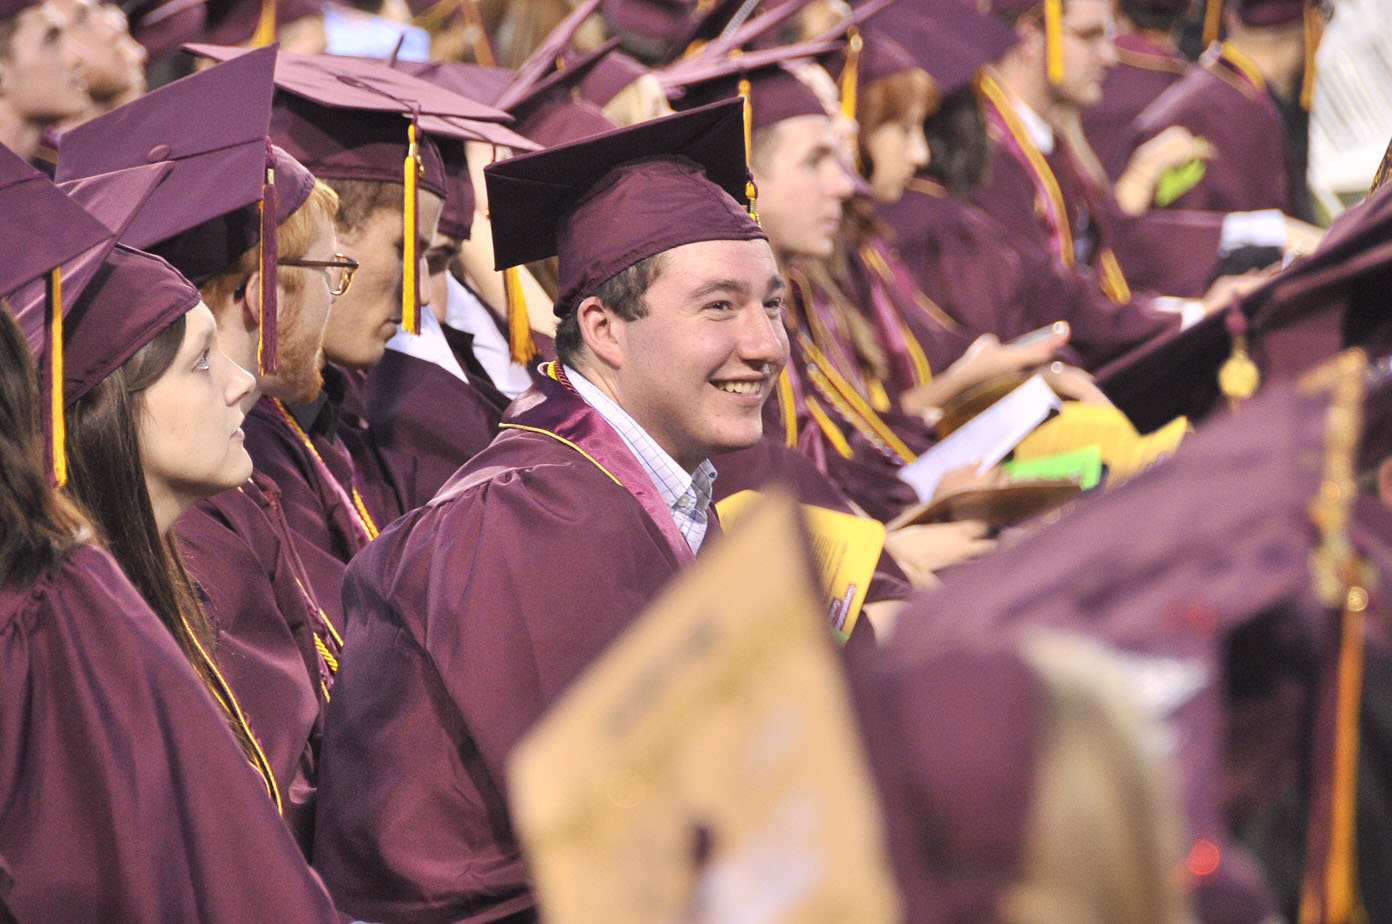 Bennett Dwosh, a recent Arizona State University graduate, said being at the bottom of a list of cities to work after graduation would cause concern. (Photo courtesy of Bennett Dwosh)